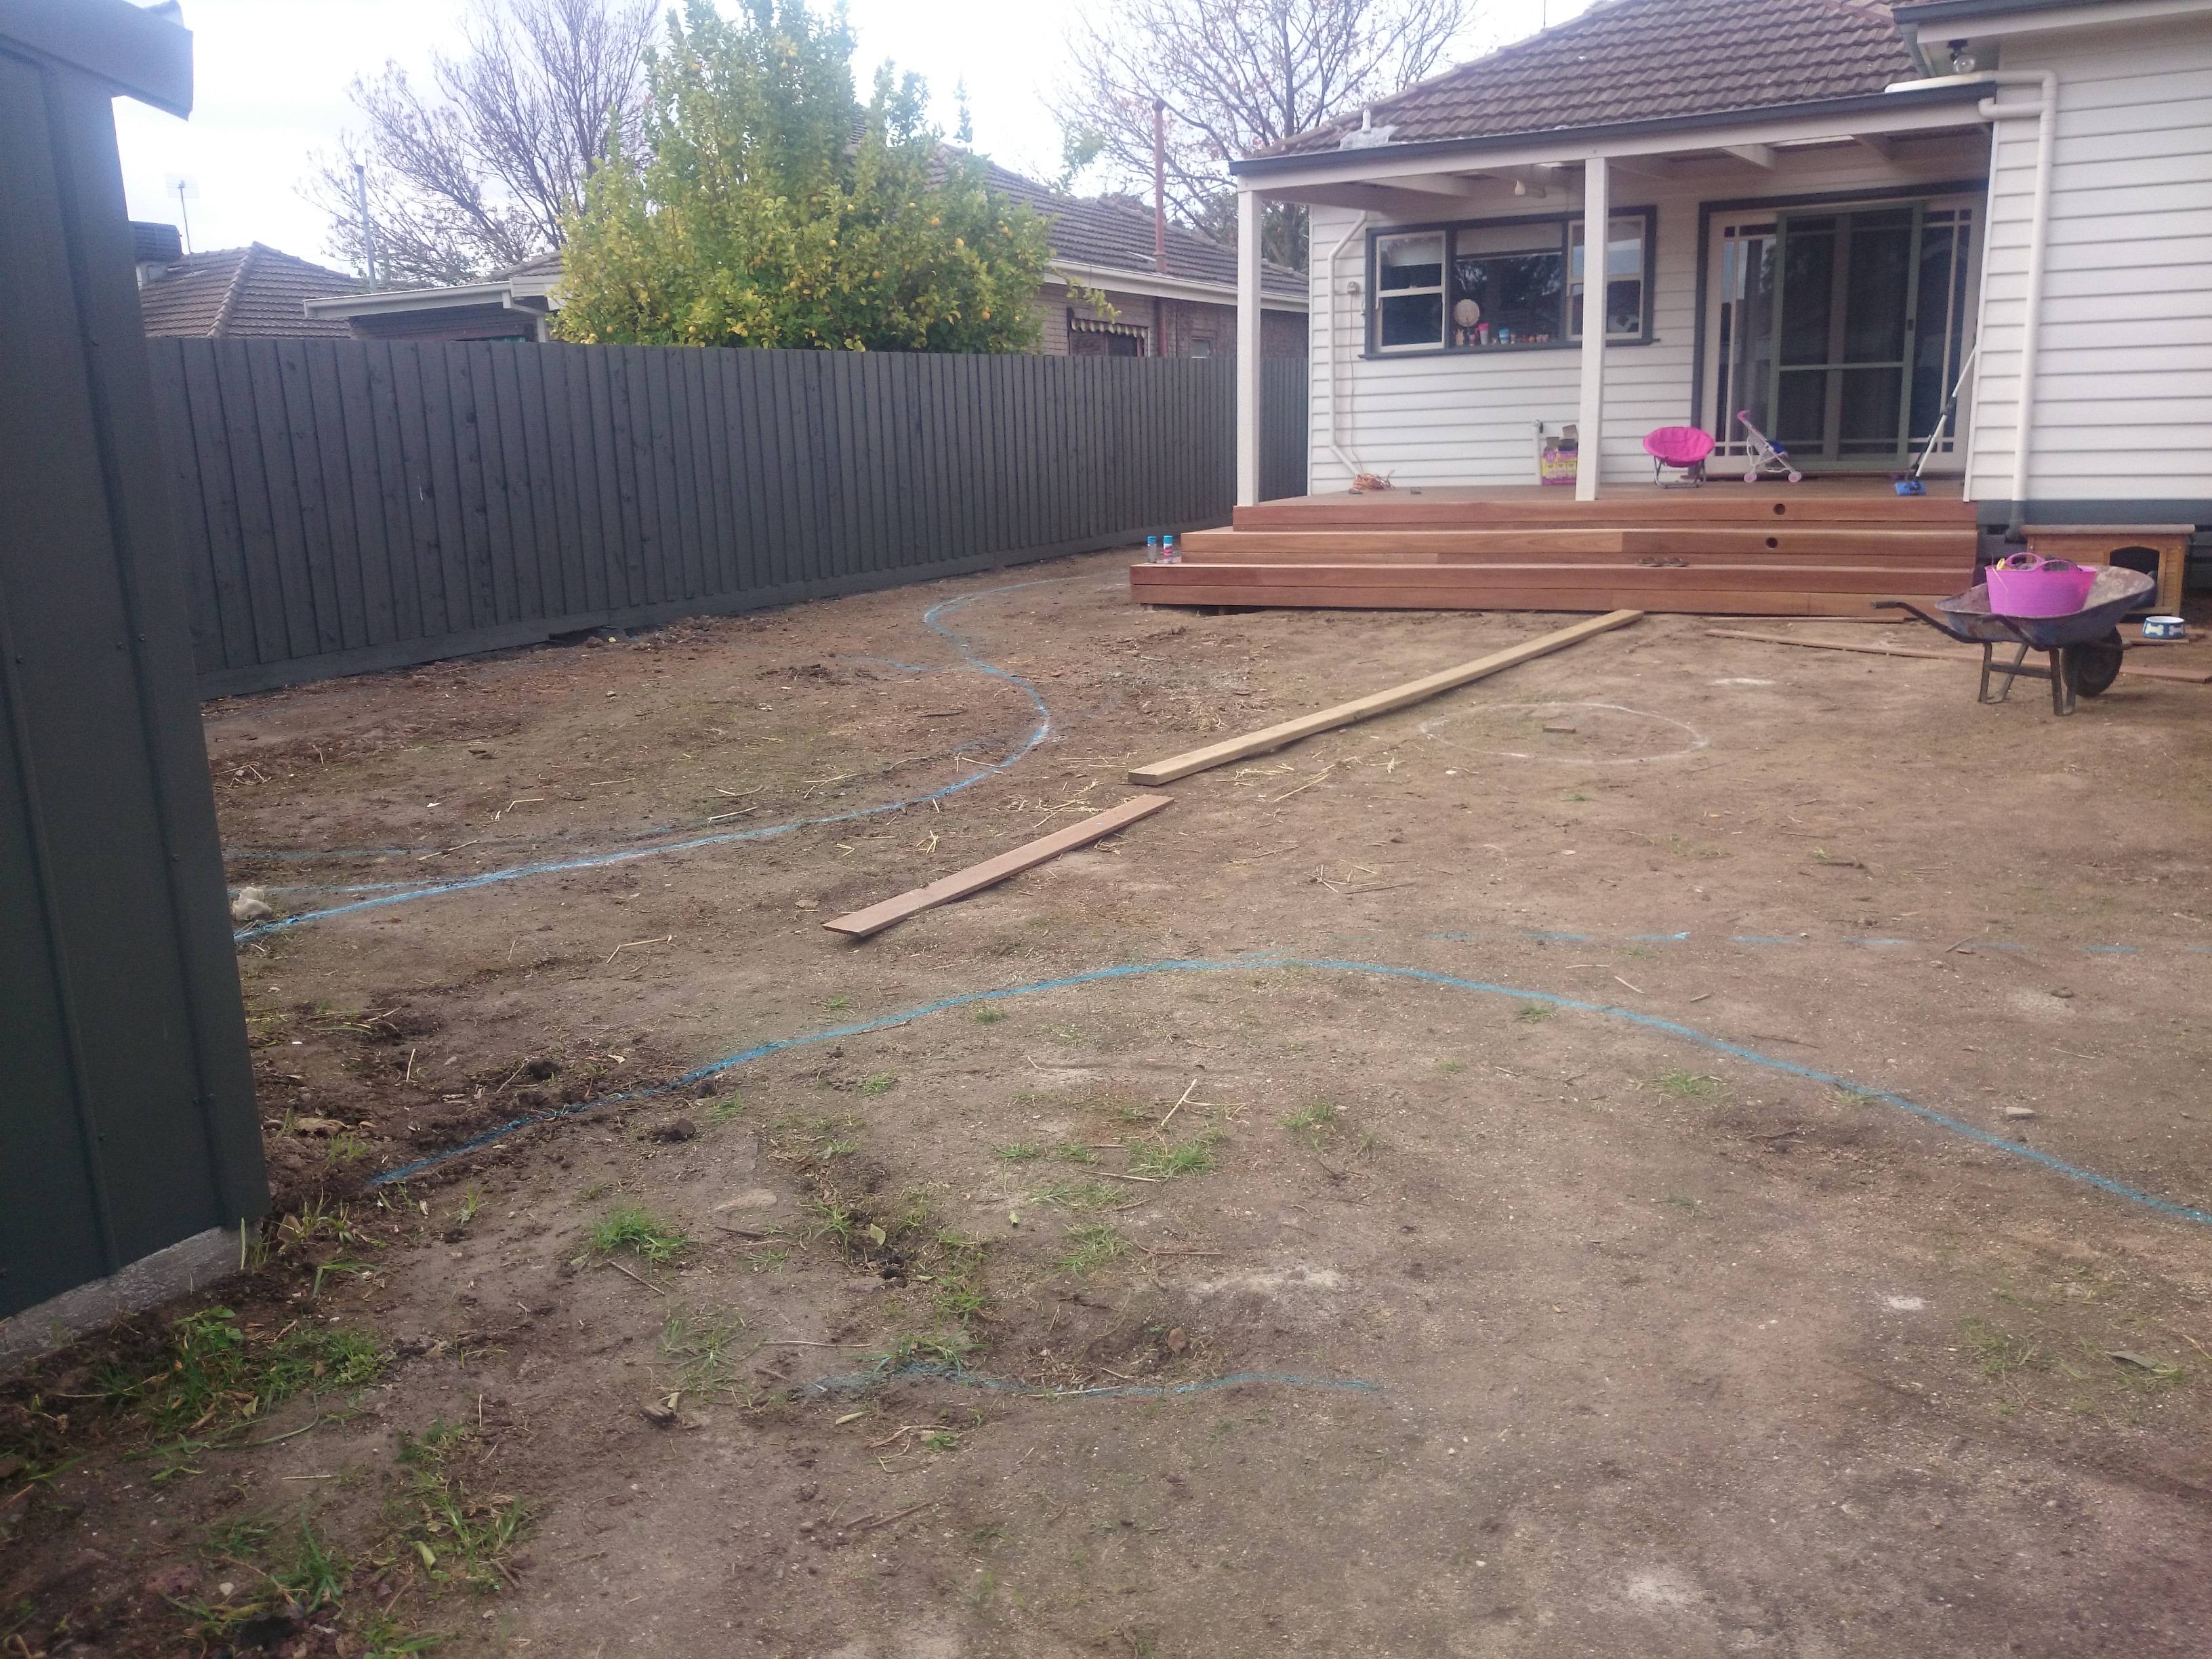 Before works commenced